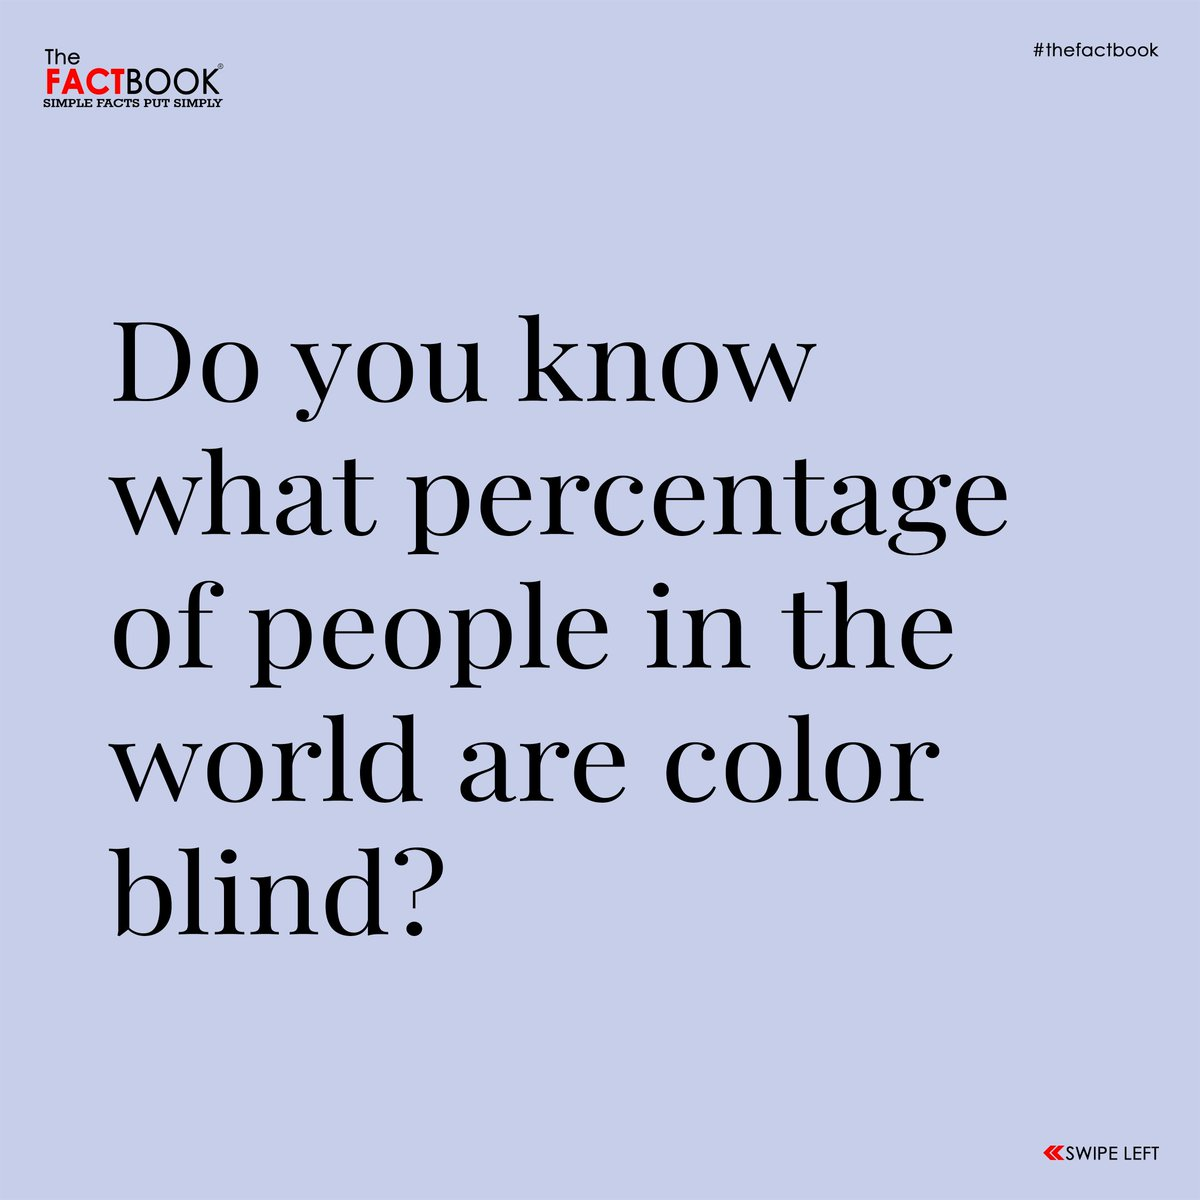 Do you know what percentage of people in the world are color blind?  3.84% of the world population! What number do you see here? If you saw any number other than 74, then you are colorblind!  An estimate of 300 million people are color blind in the world! #thefactbook #colorblind https://t.co/AwdZBGv4zN